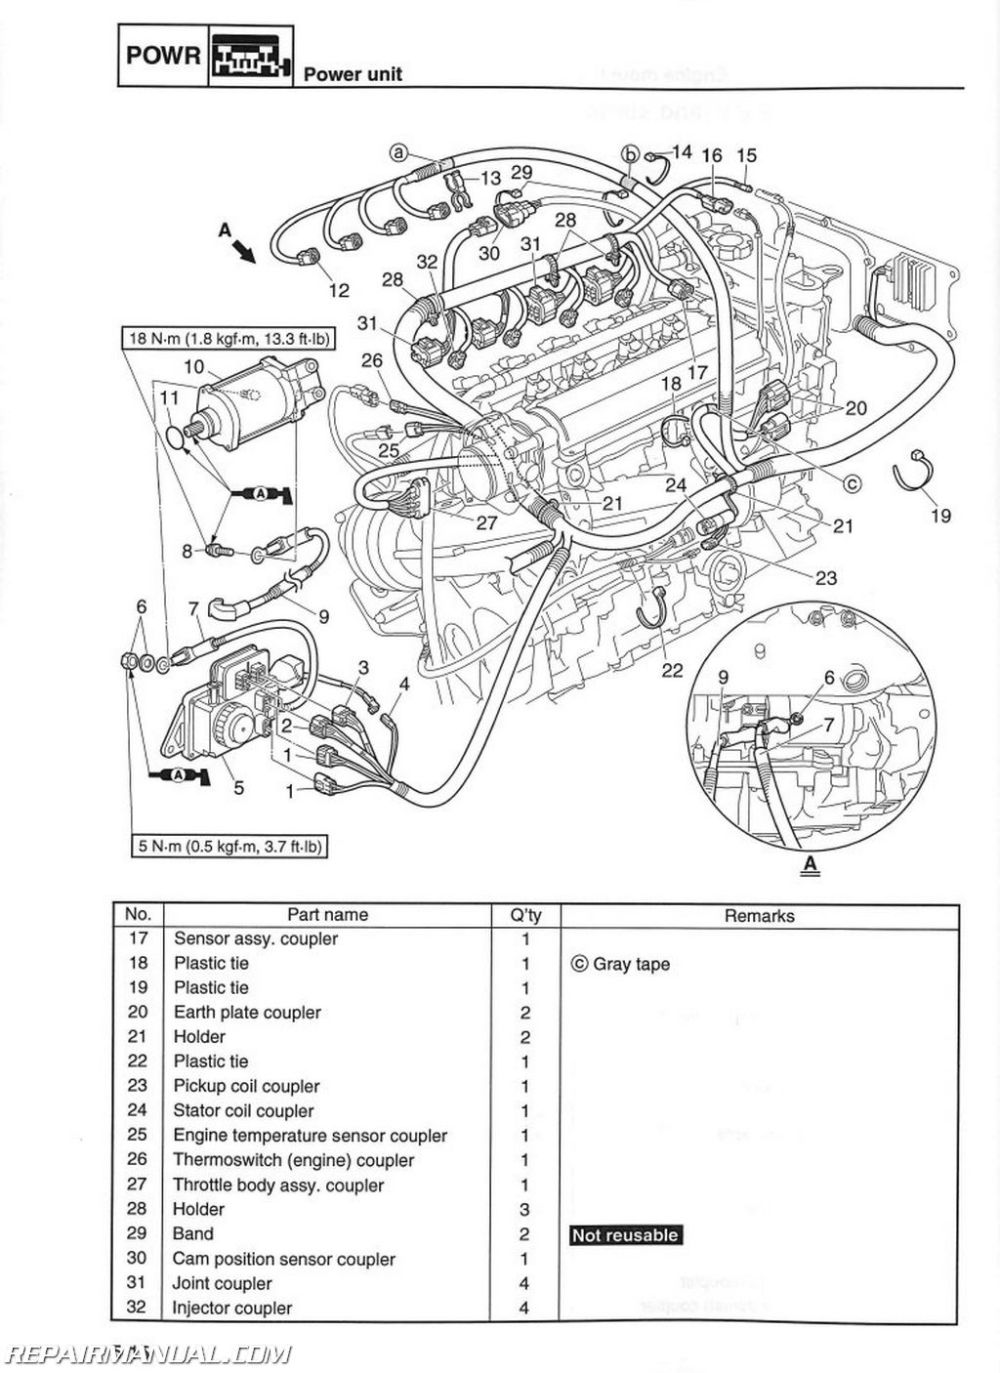 medium resolution of waverunner engine diagram wiring diagram details waverunner engine diagram waverunner engine diagram